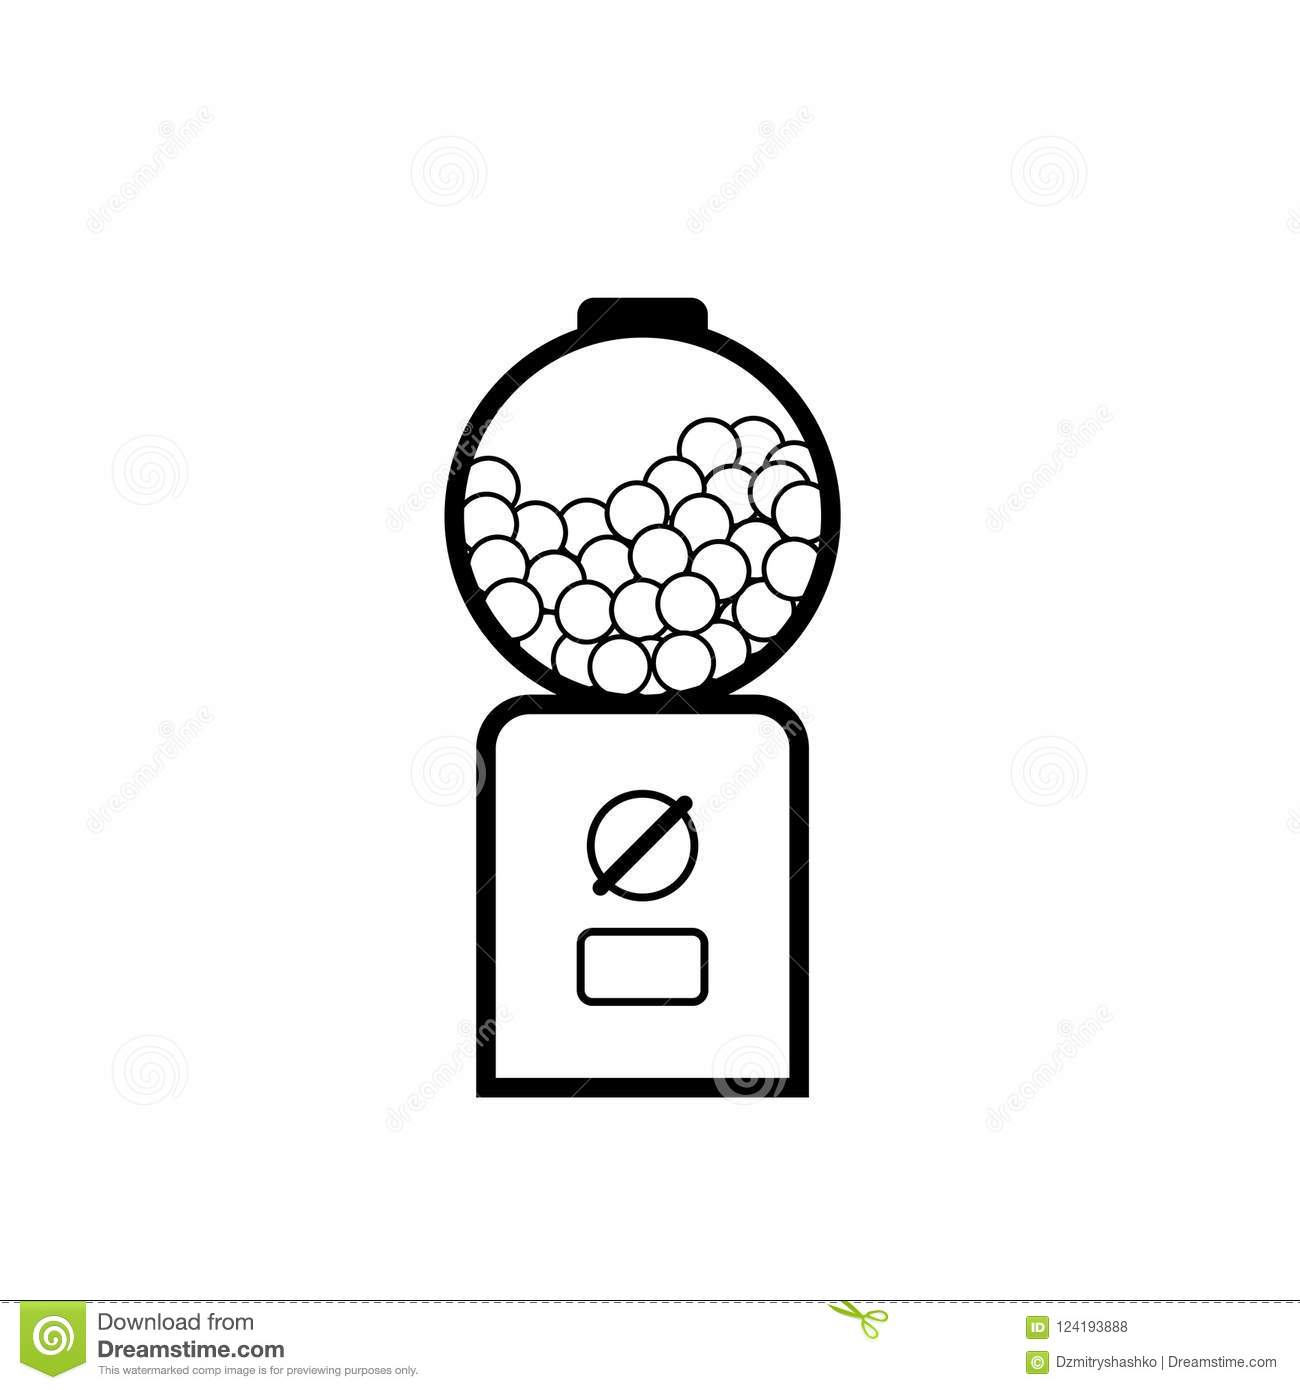 hight resolution of gumball machine outline icon vending clipart isolated on white background